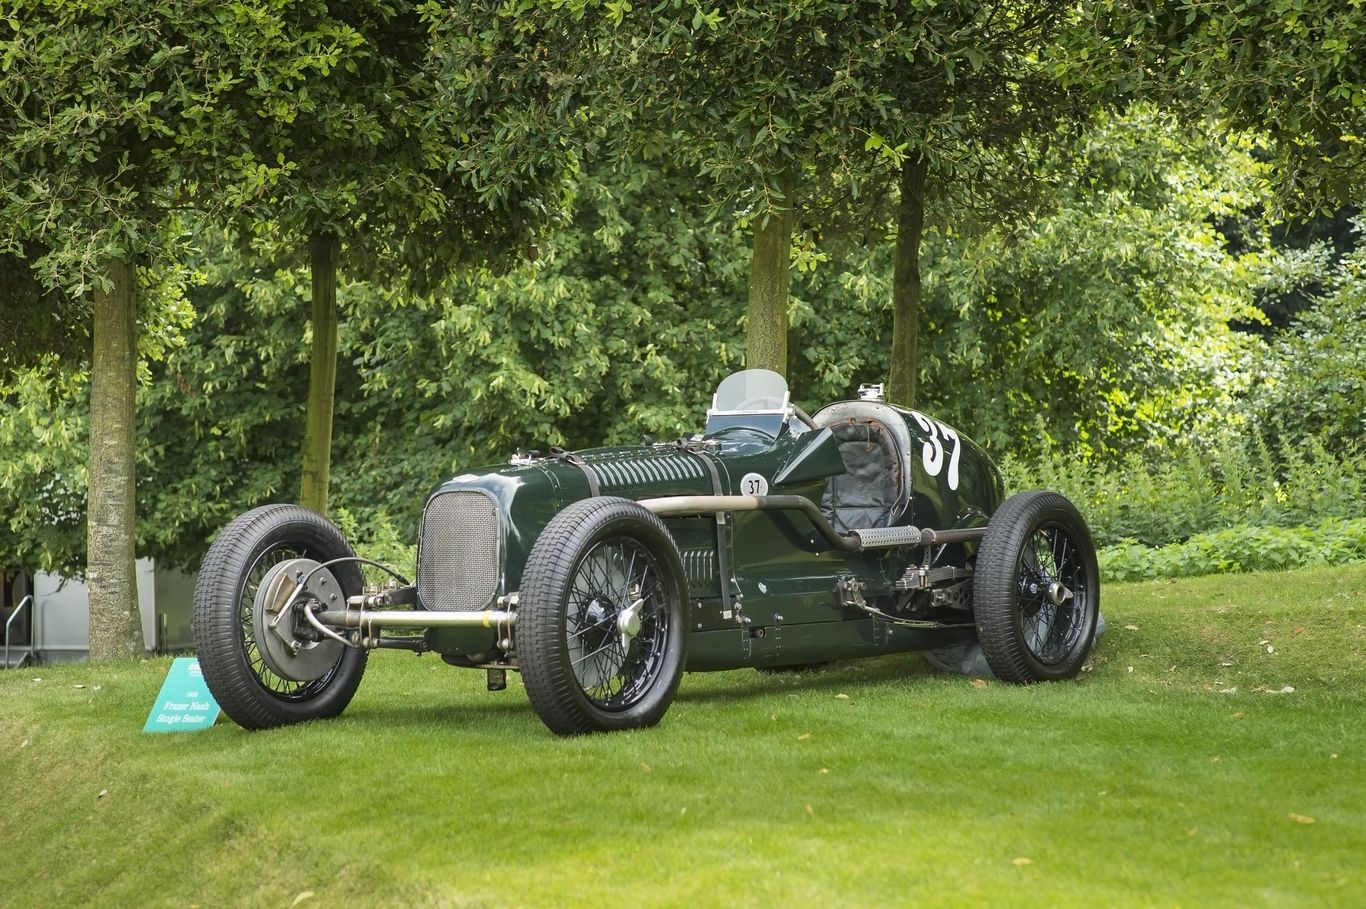 1935 Frazer Nash twin-supercharged single-seater